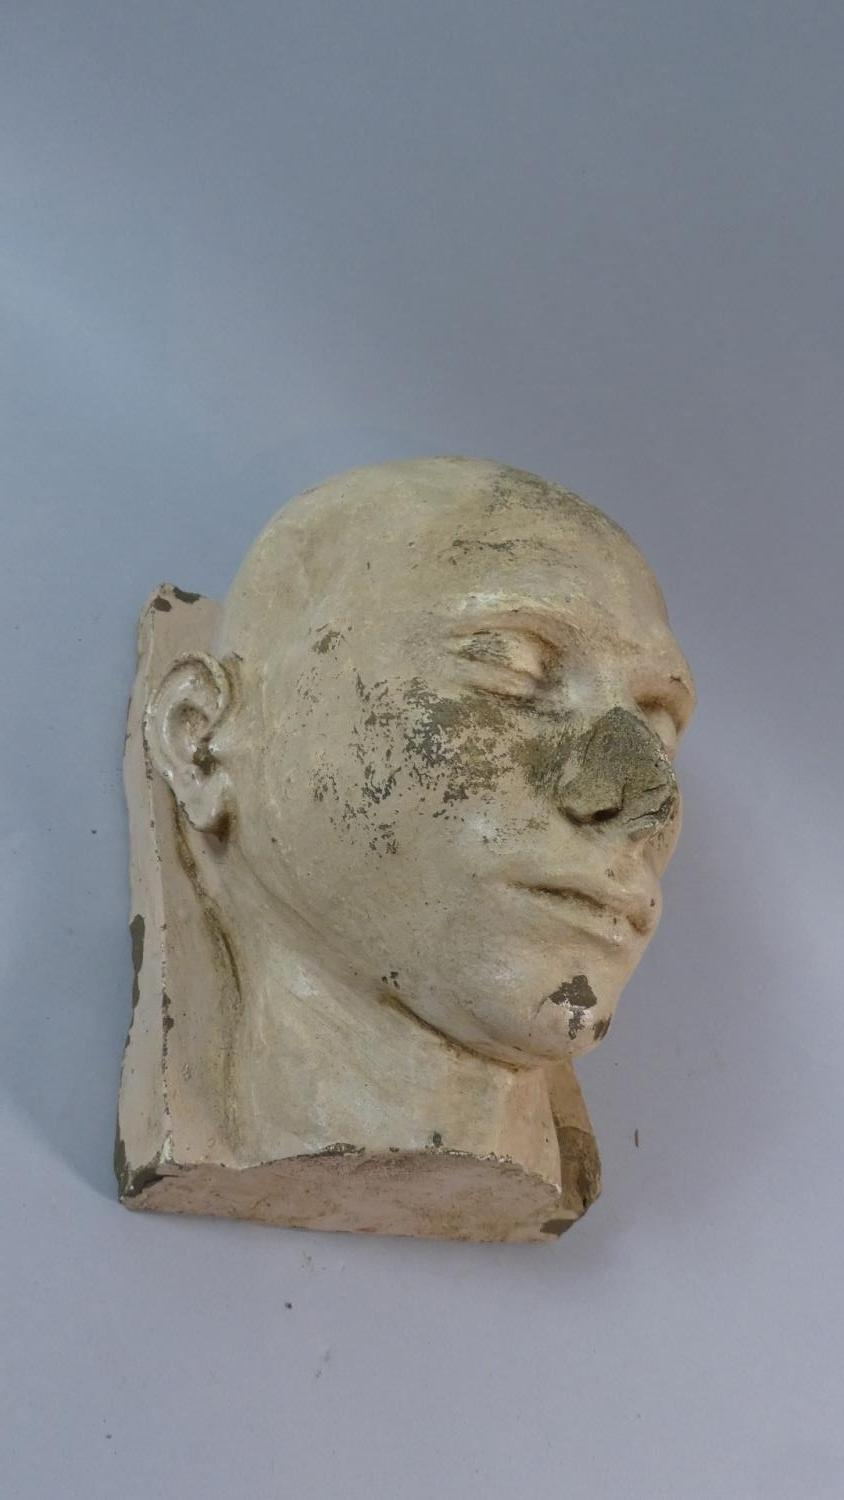 A 19th Century Plaster Death Mask of a Shaven Headed Man, Possibly a Convict or Asylum Inmate.